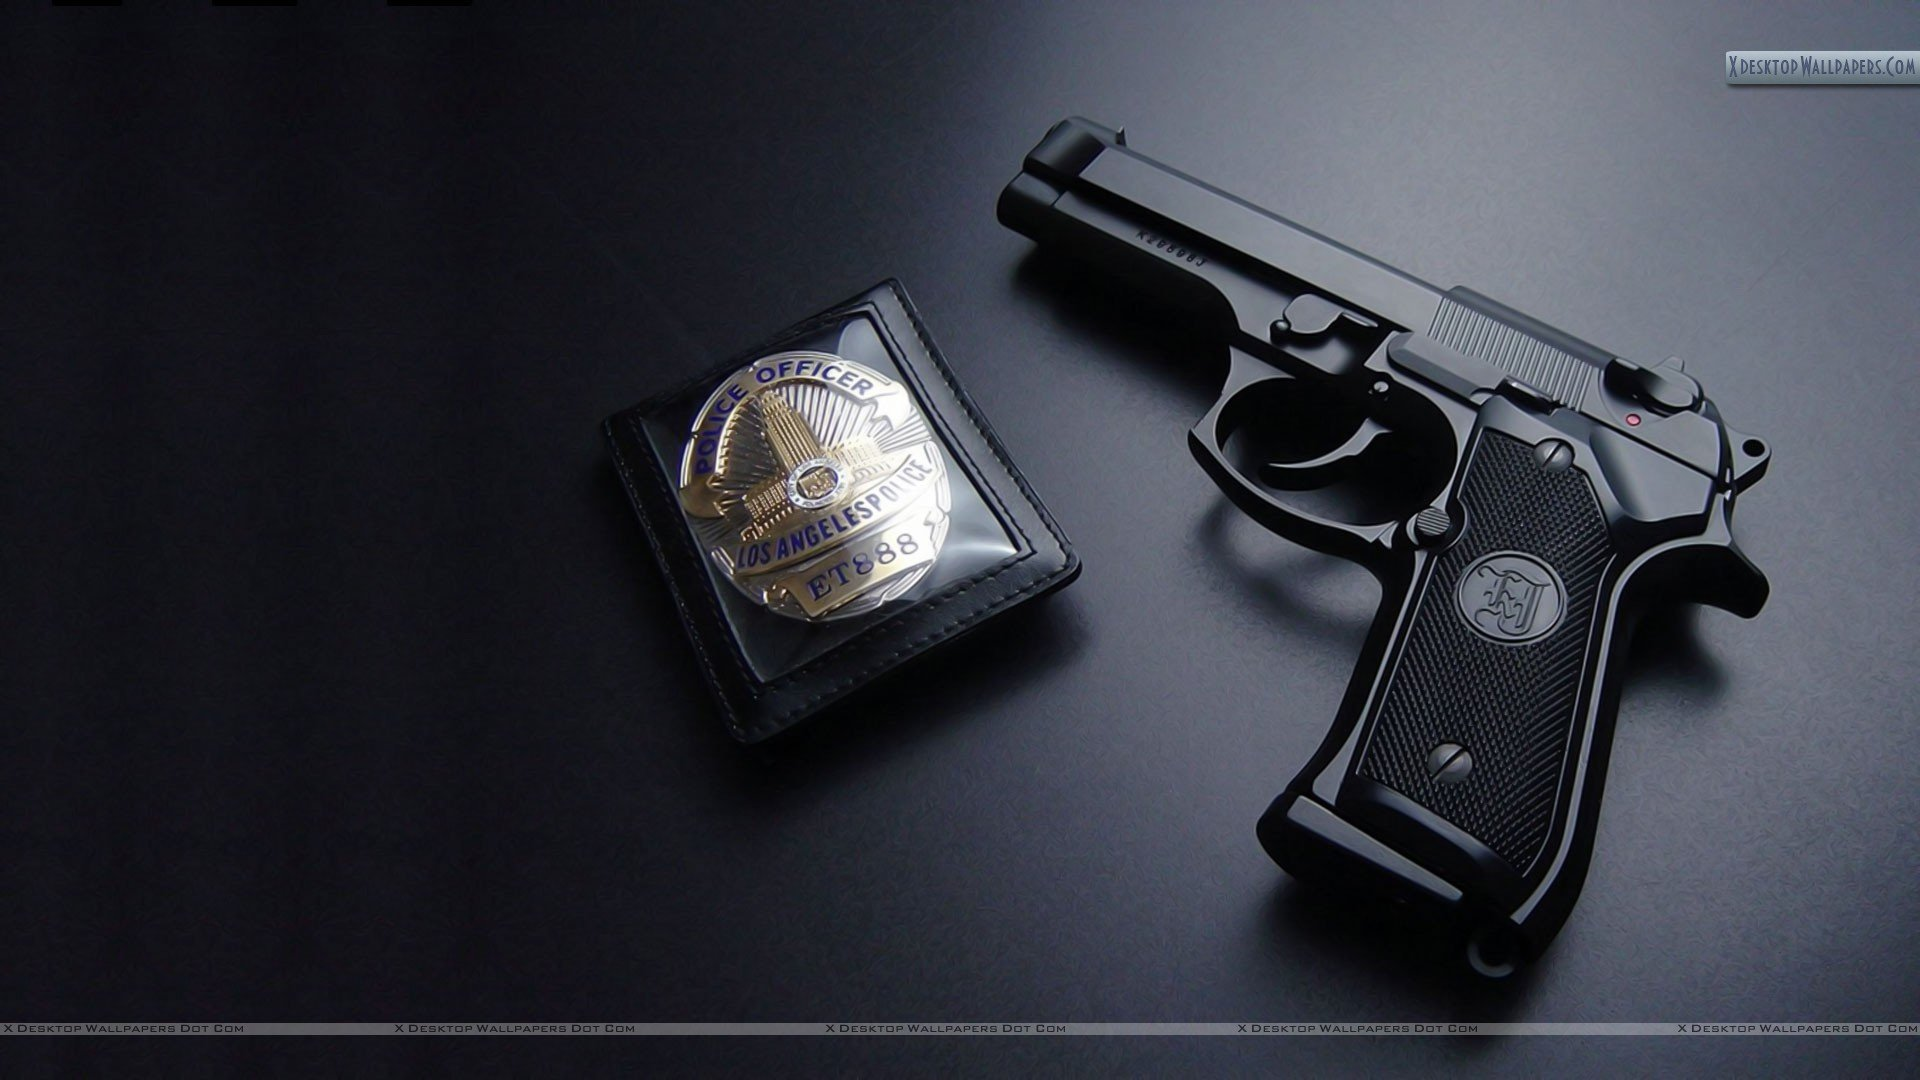 Los Angels Police Gun With Badge Wallpaper